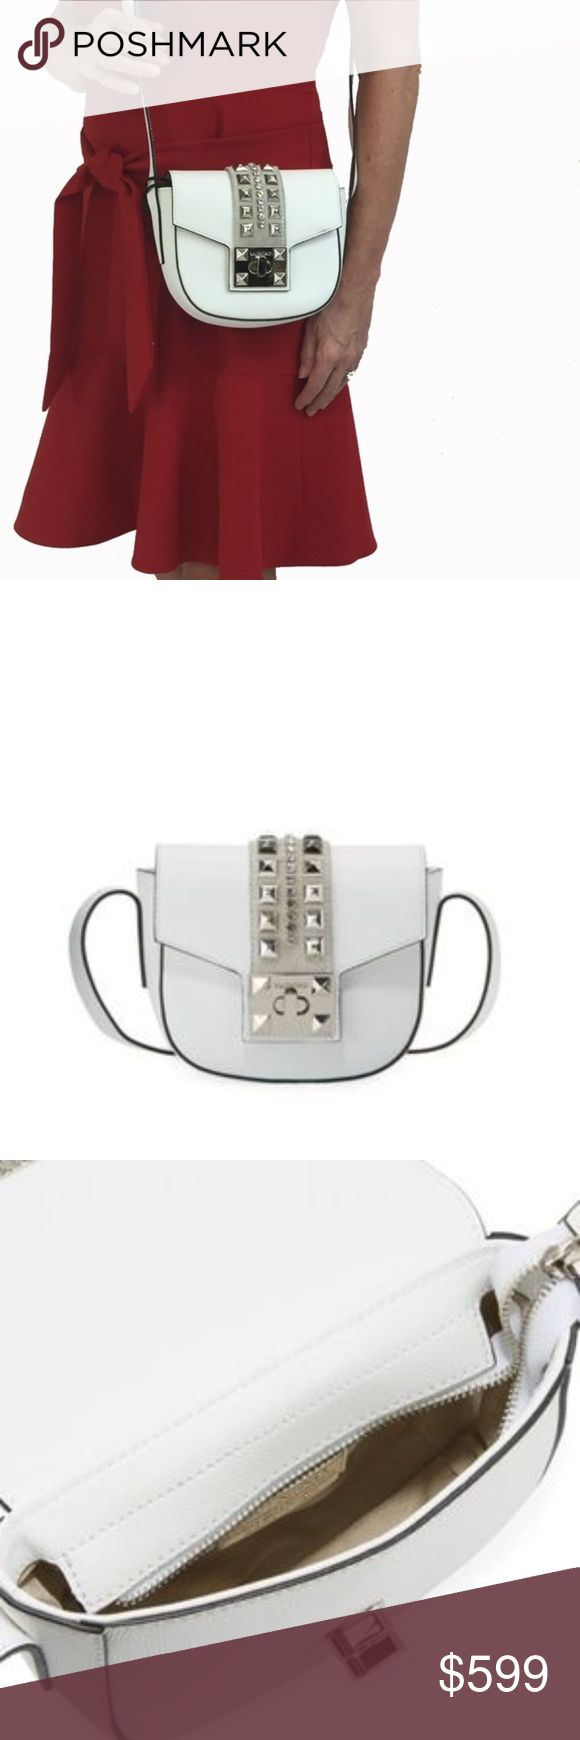 """FinalSALE Valentino Leather Rockstud Crossbody Bag Valentino By Mario Valentino SAFFIANO leather studs crossbody bag  SALE PRICE IS FIRM!  SOfT, LUXURIOUS LEATHER, RHINESTONE AND STUD HANDBAG  Neutral thread and black edges on white leather Spike studs and rhinestone embellished trim on light grey suede Adjustable shoulder strap, 22.8"""" drop Flap top covers recessed zip top closure Turn-lock closure Interior, fabric lining Made in Italy  Dust bag, Valentino tag, Certificato Di Qualita Booklet…"""